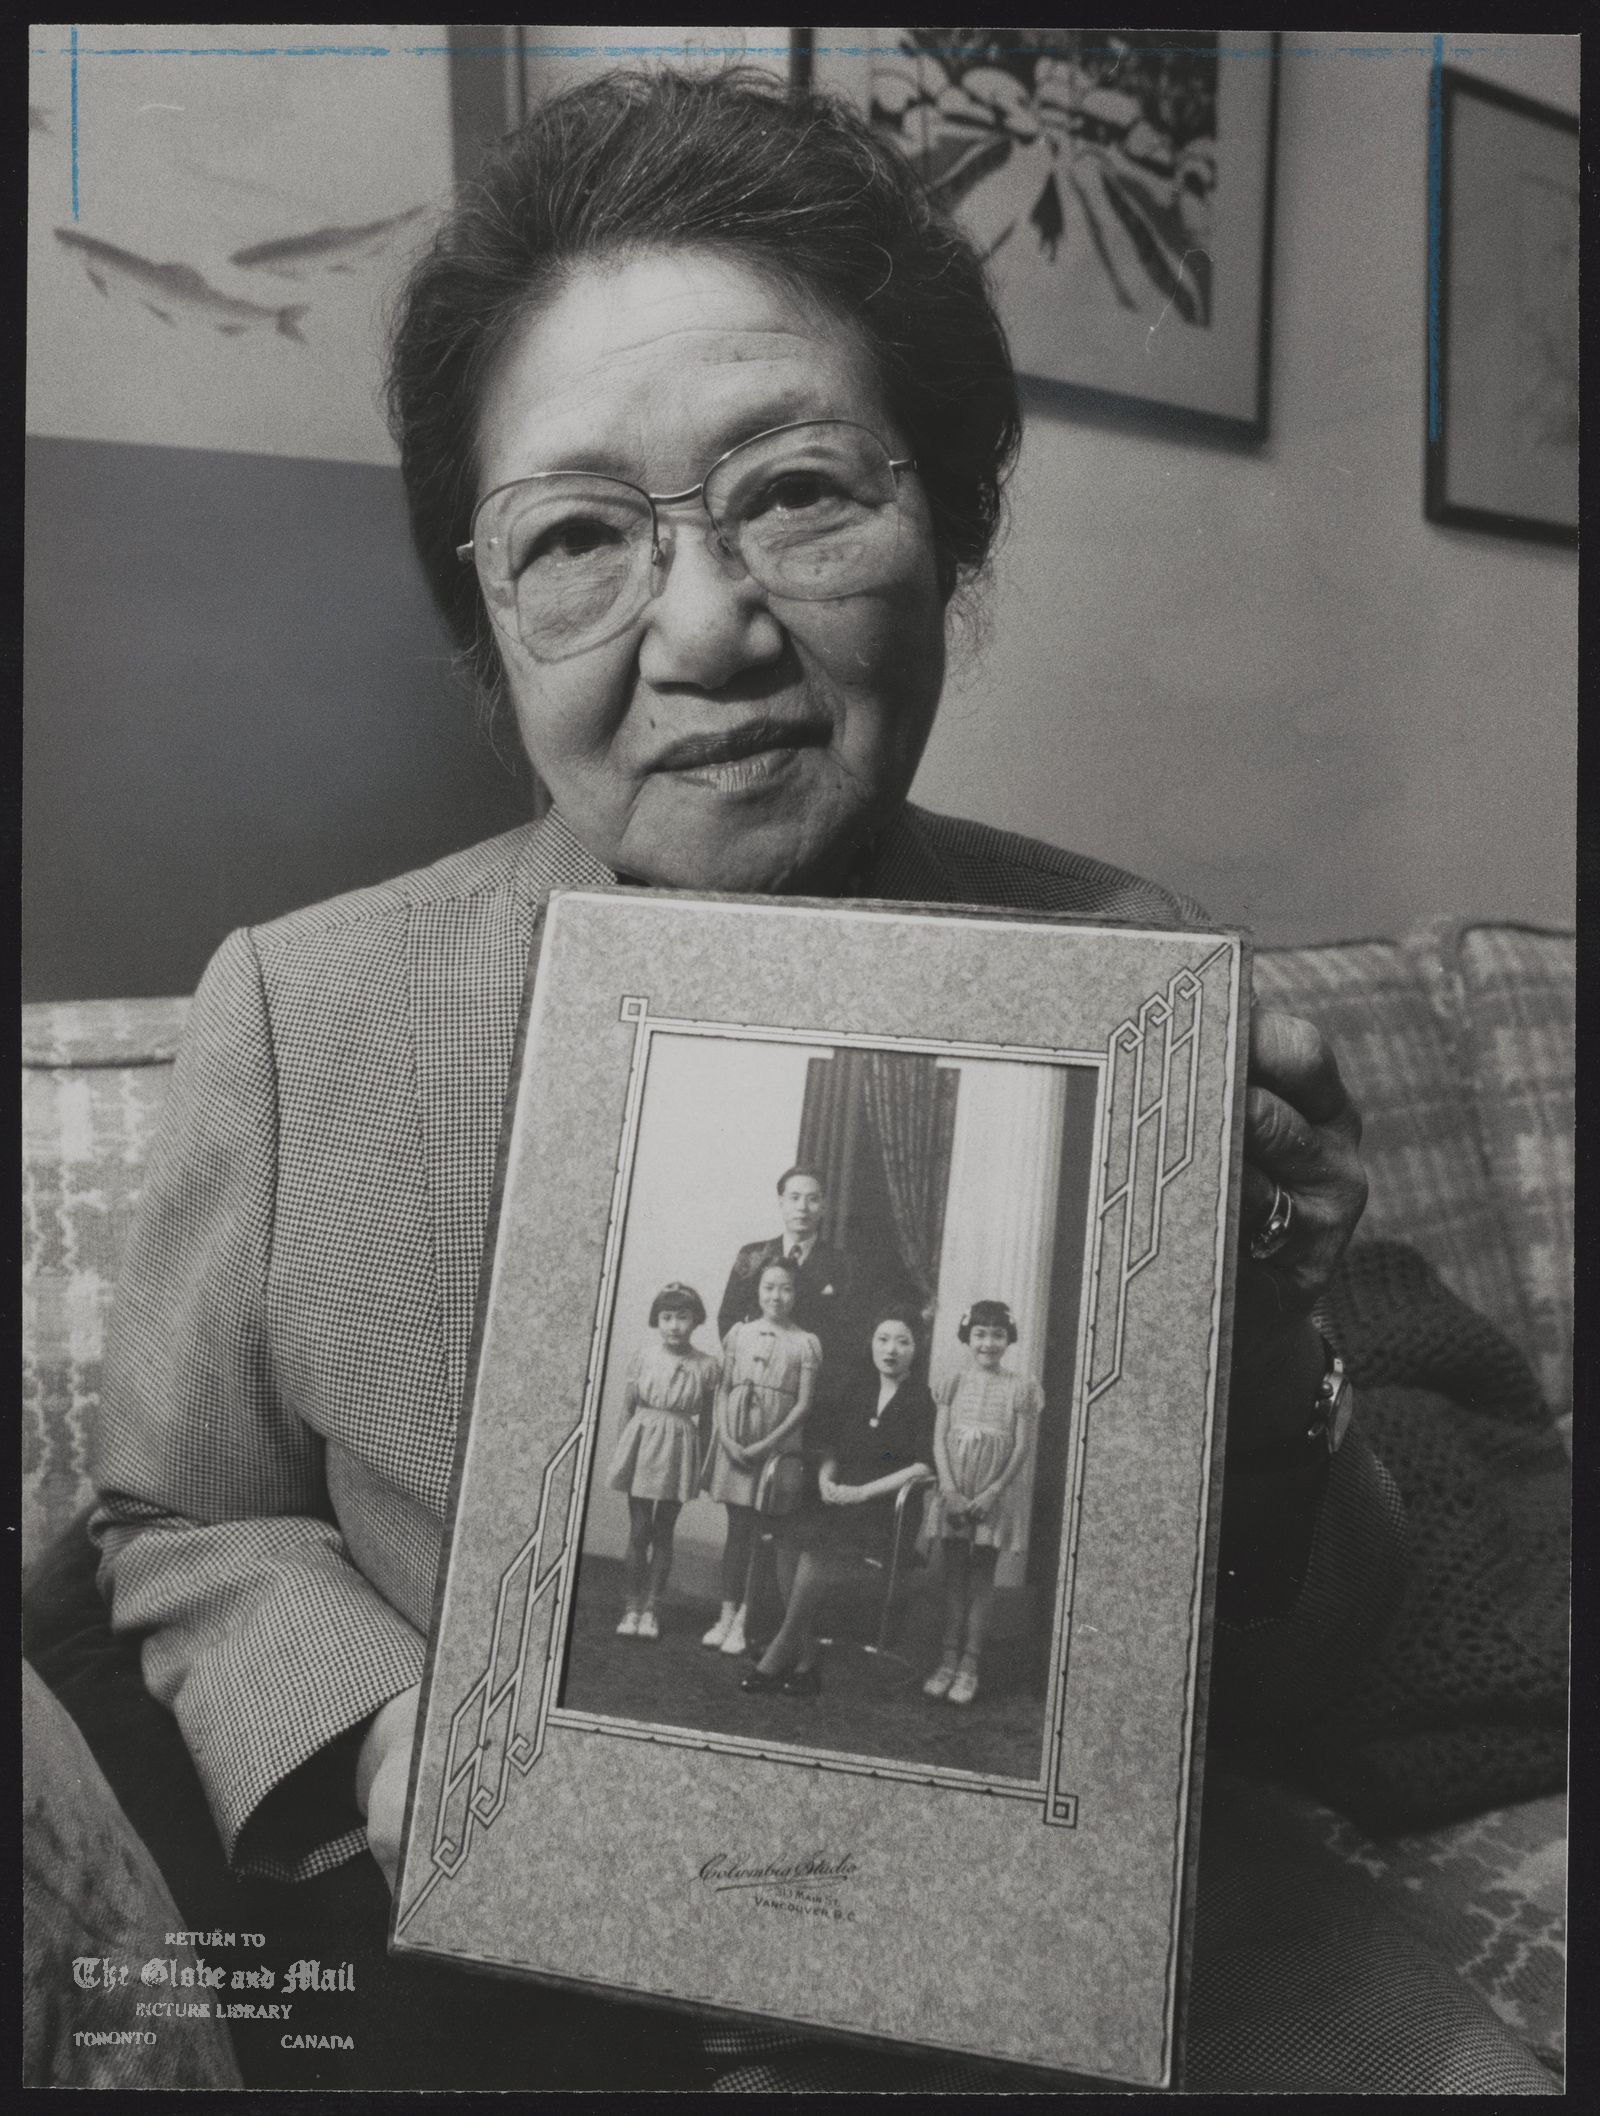 JAPANESE IN CANADA Mrs. Umezuki with family photo taken a year before internment. [Redress for Japanese: can knot be untangled? In 1942 her husband was sent to Rainbow in the interior of British Columbia to work on a road camp. In need of money, Mrs. Umezuki sold the family dry-cleaning business and took her three daughters to an internment camp in Tashme, B.C., 100 miles from the Pacific coast. They lived in a barn-like structure and were soon joined by Mr. Umezuki who labored at Tashme for 25 cents an hour.]